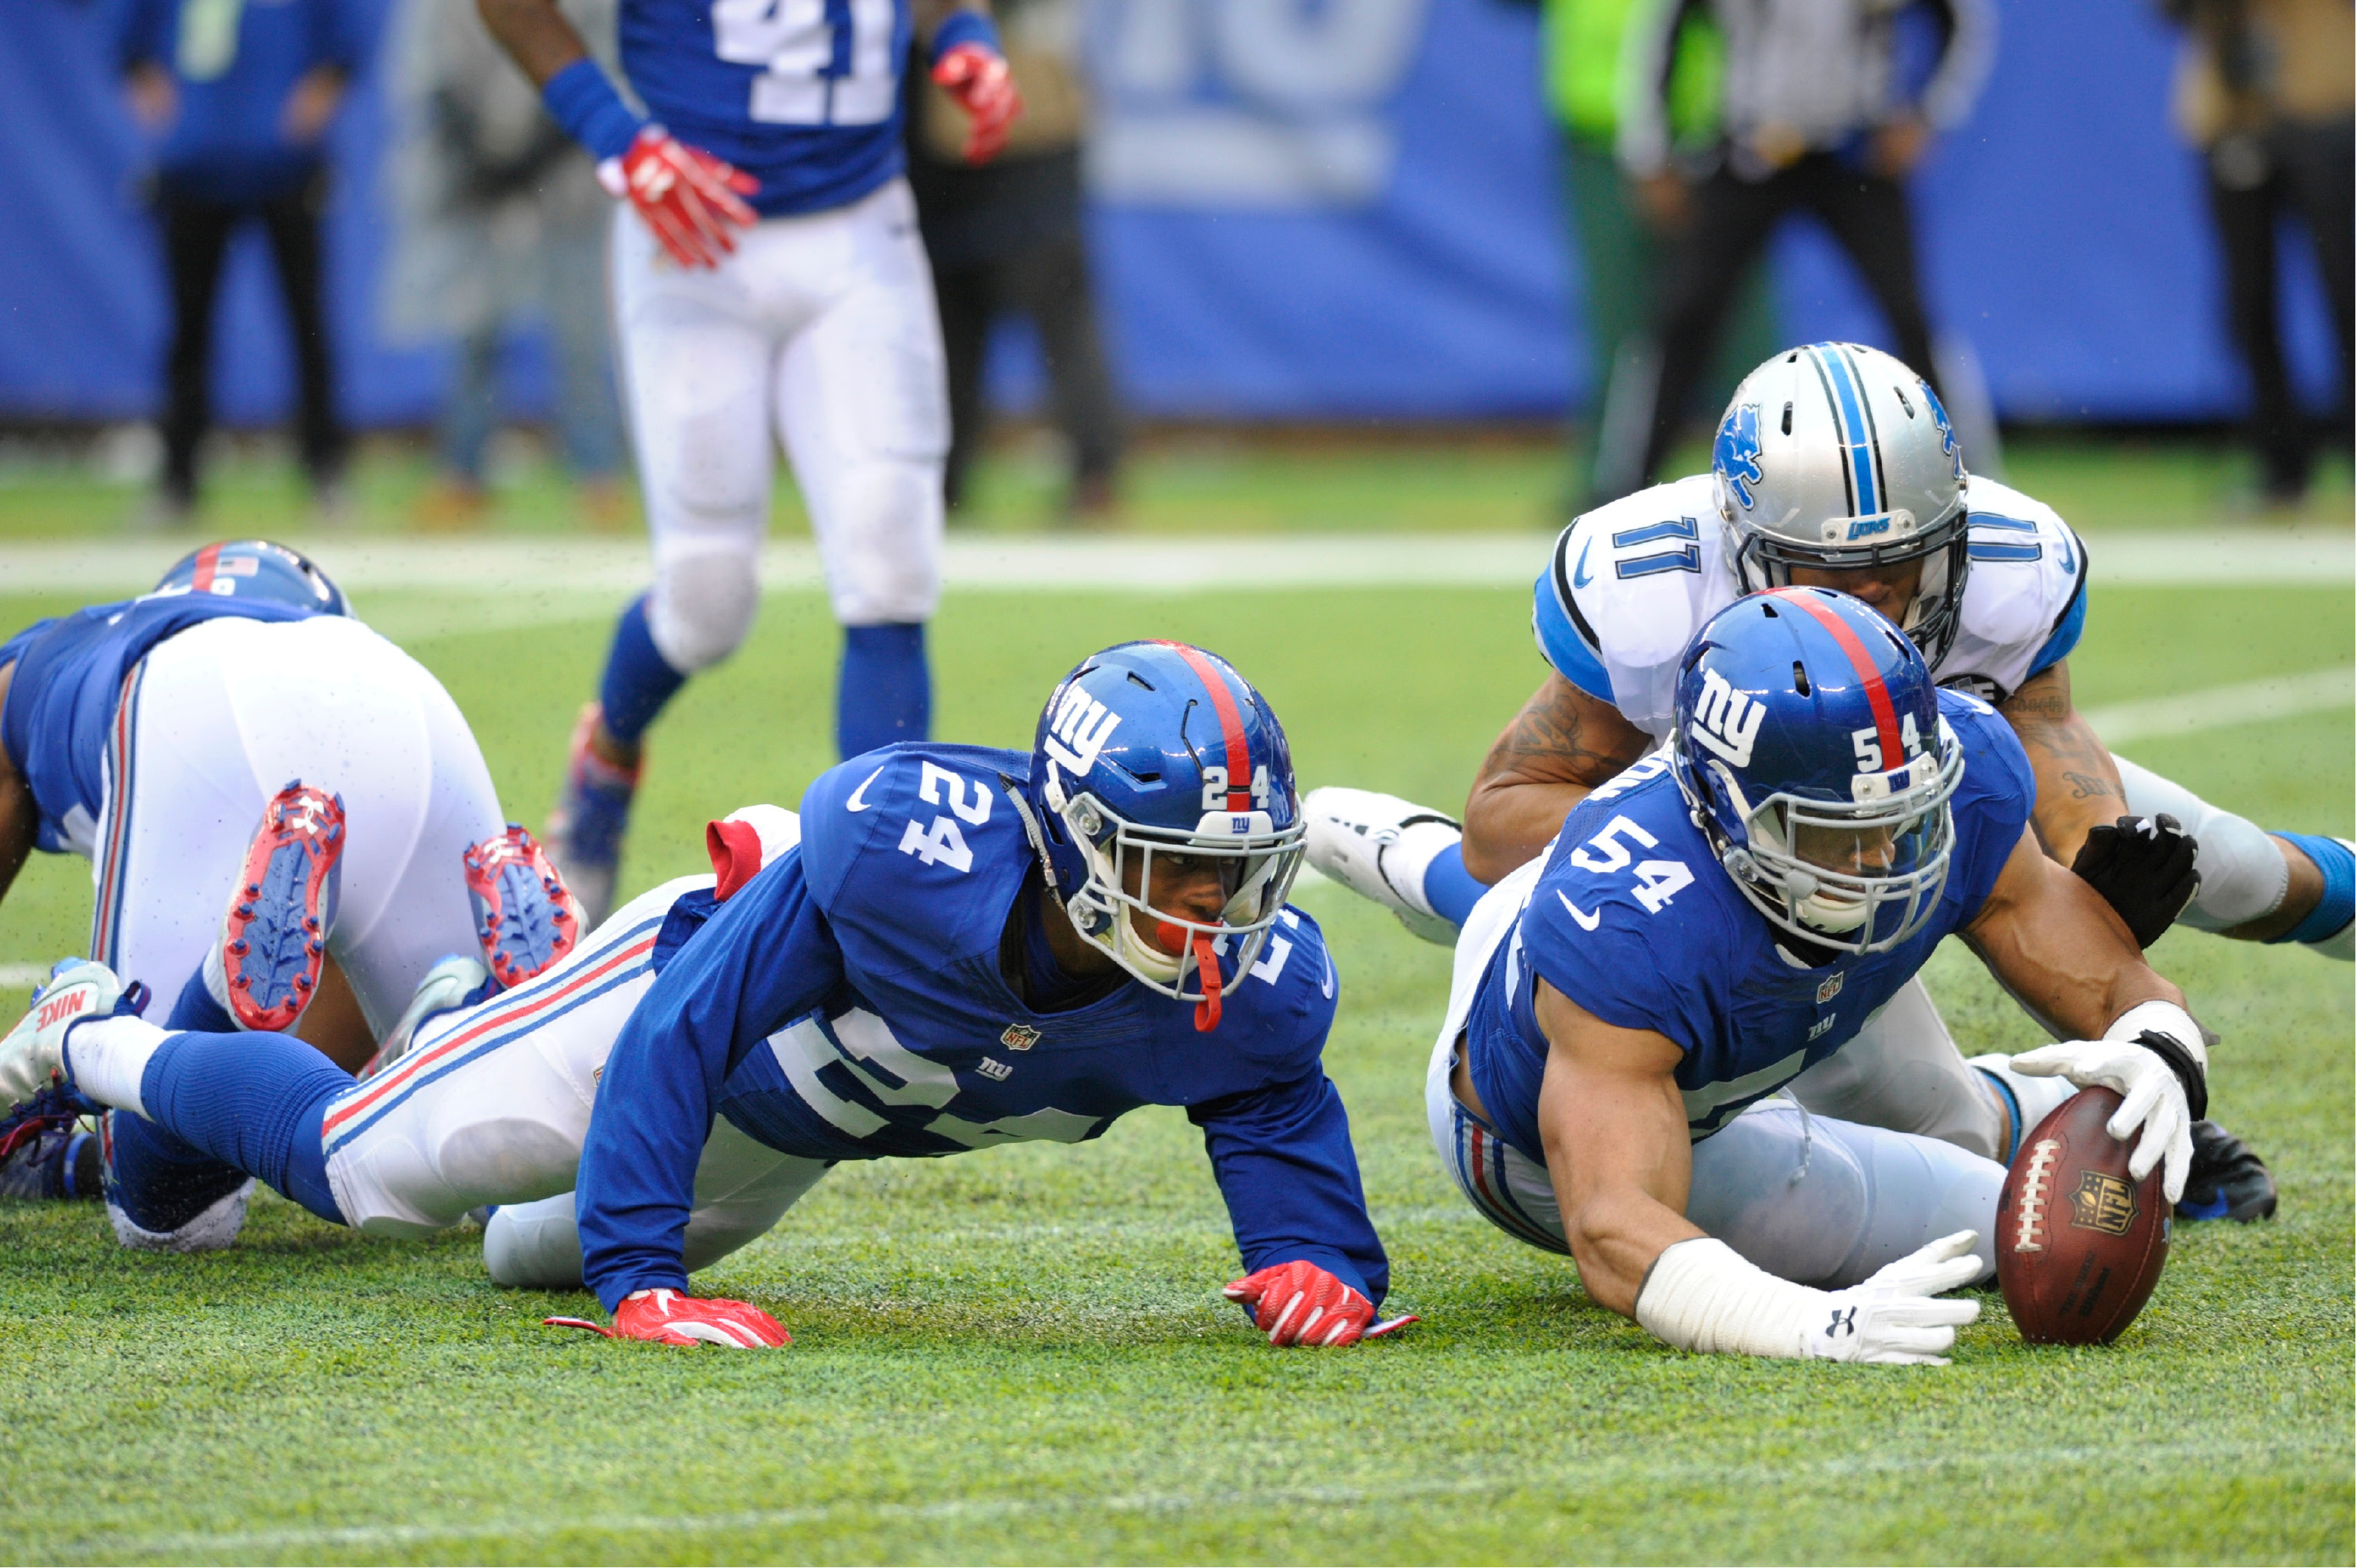 New York Giants defensive end Olivier Vernon (54) recovers a fumble as Detroit Lions wide receiver Marvin Jones (11) and Eli Apple (24) close in during the first half of an NFL football game Sunday, Dec. 18, 2016, in East Rutherford, N.J. (AP Photo/Bill Kostroun)